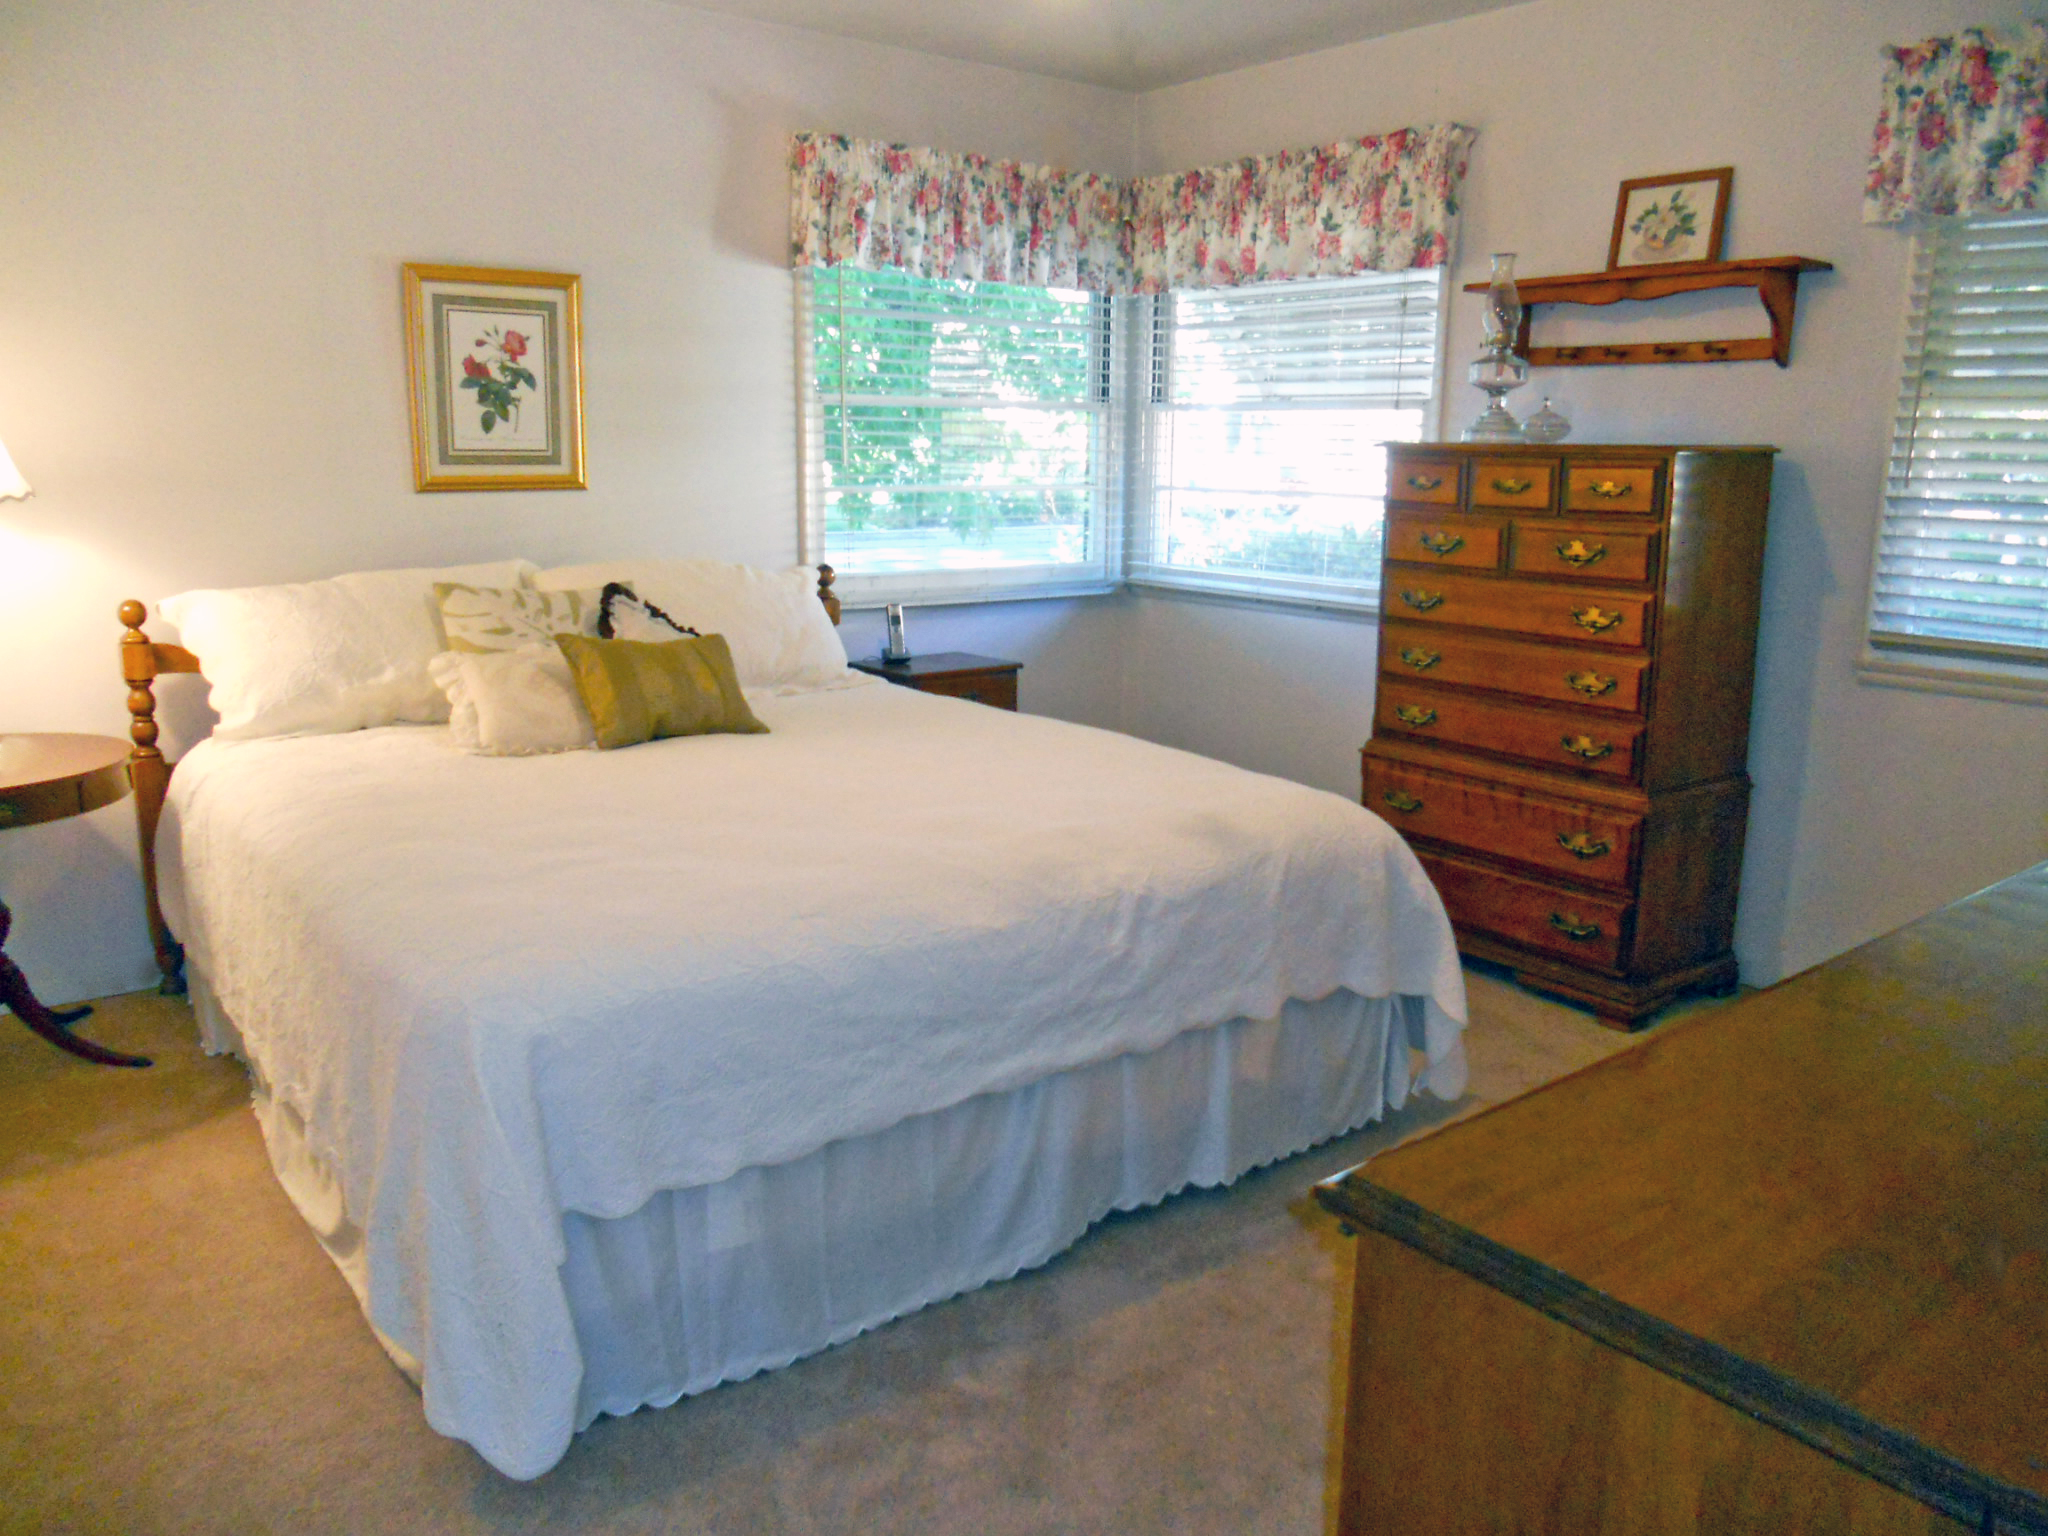 Master bedroom with king-size bed and still plenty of room for dressers, chair, etc.